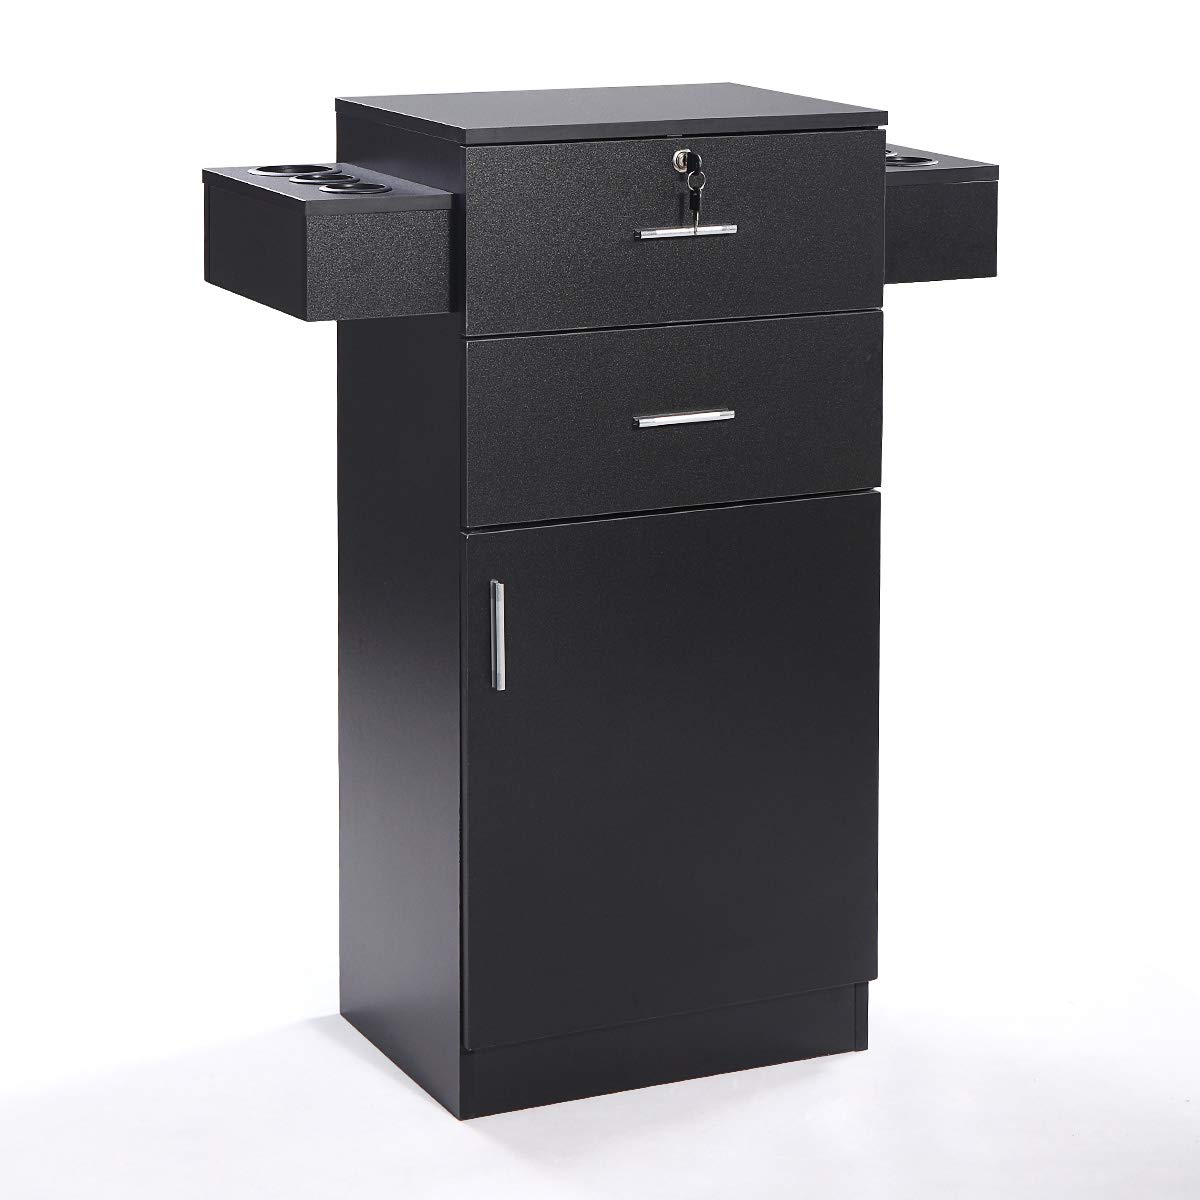 Sandinrayli Black Salon Storage Station Locking Drawer Storage Cabinet Equipment 3-layer w/Hair Dryer Holder by Sandinrayli